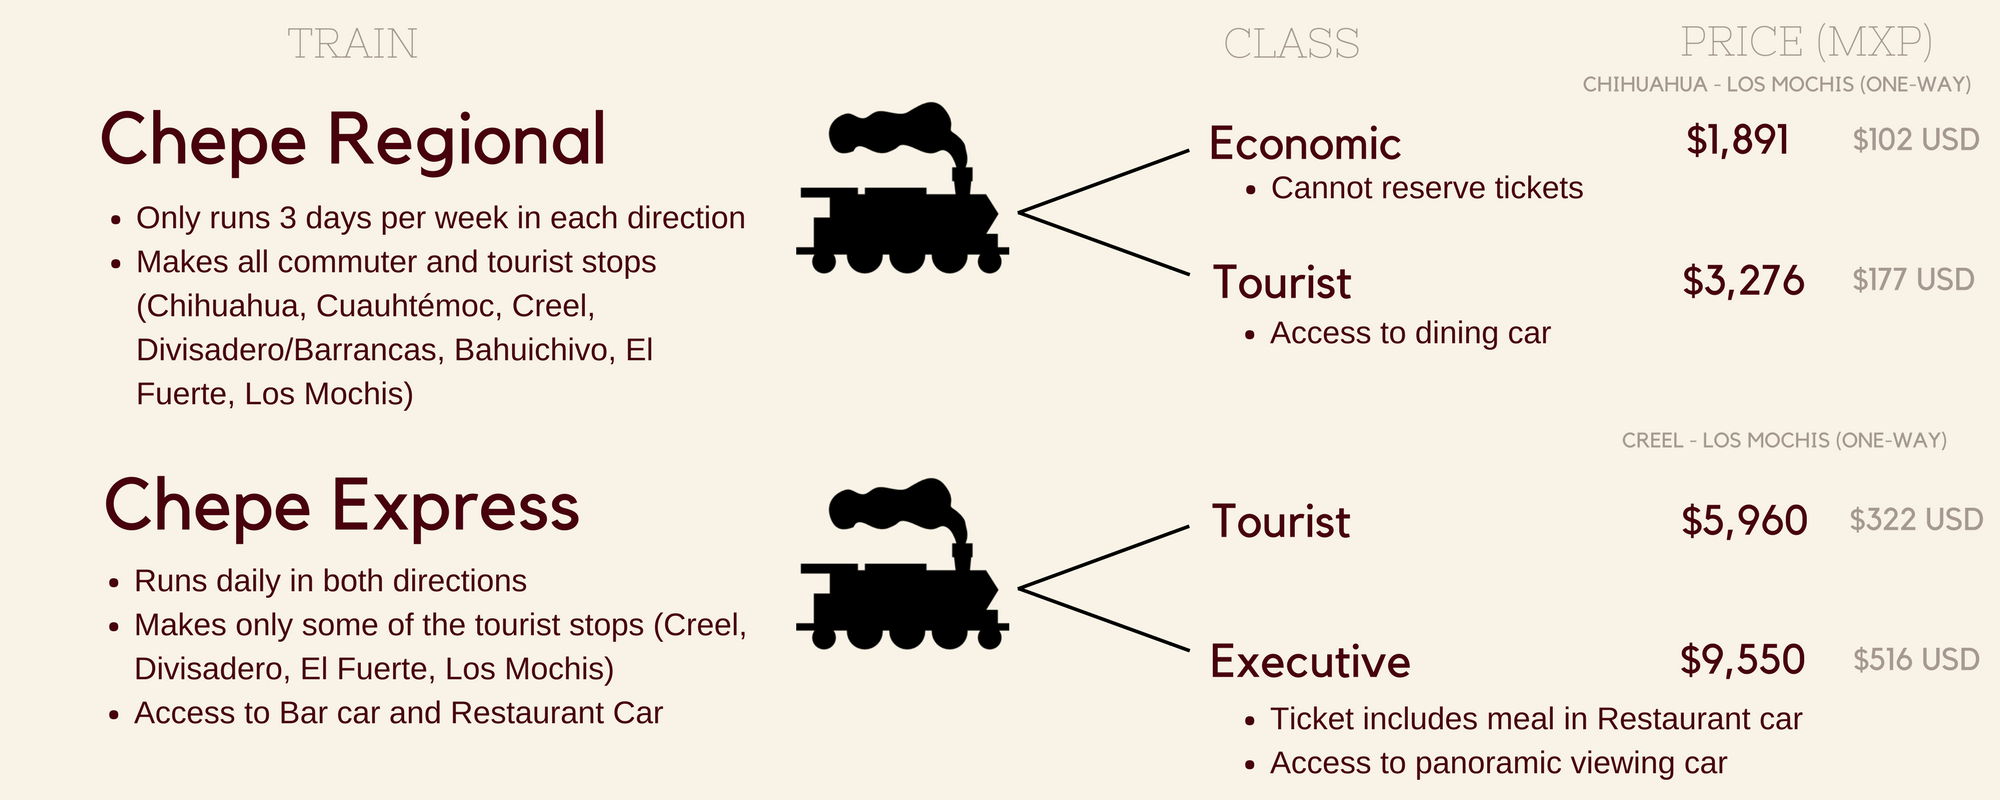 Copper Canyon by Train - Differences between Chepe Regional and Chepe Express